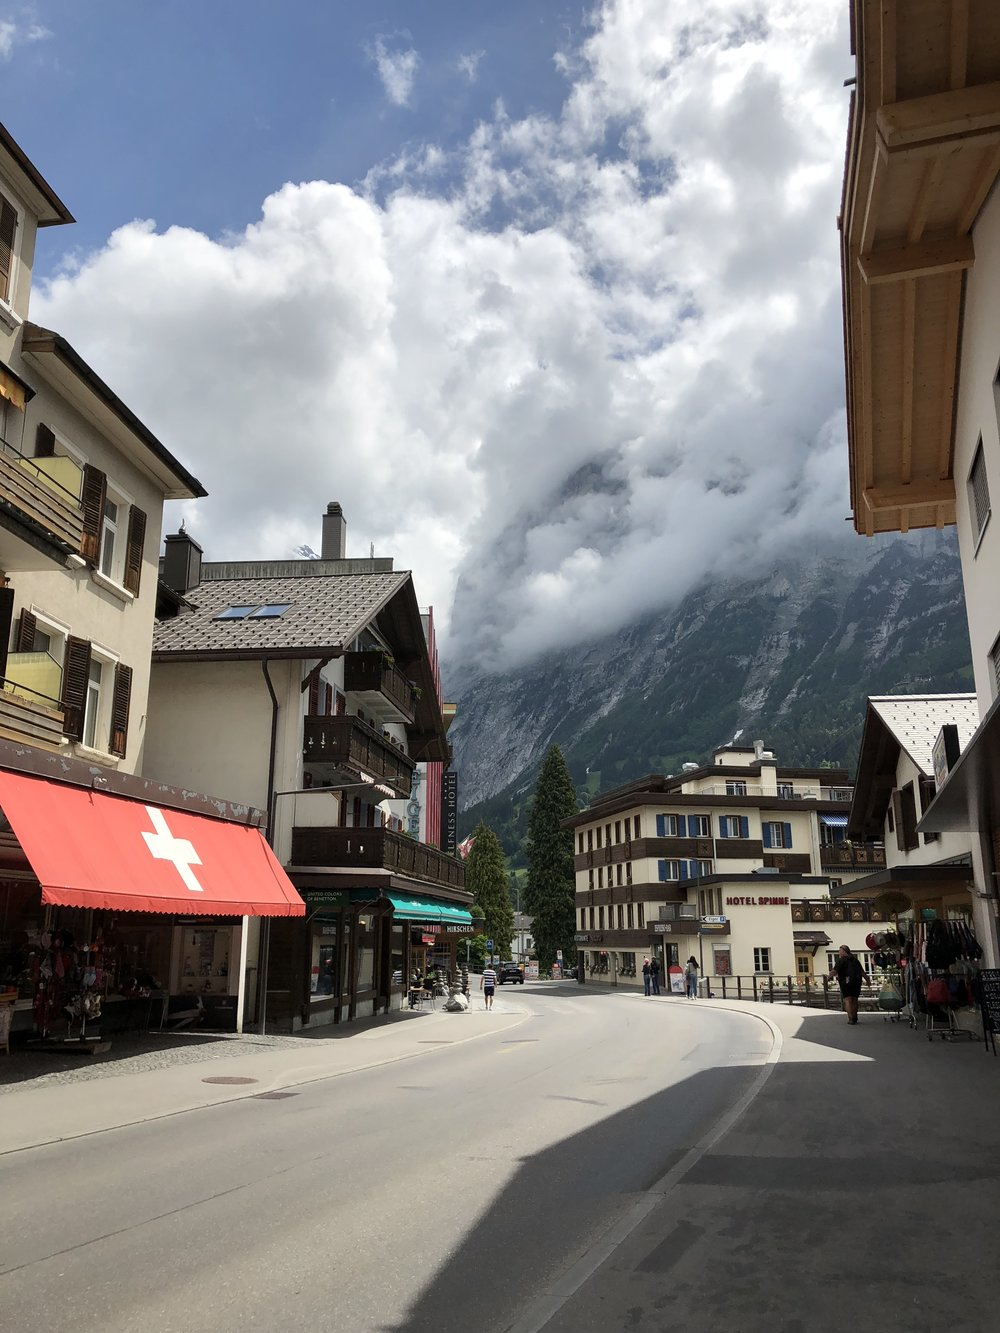 On our way out of Switzerland to Italy, we stopped in Grindelwald. We arrived right around lunch time, which meant a lot of stores were closed. I was a bit bummed since there were a few places I would have liked to have popped into. We wandered through town a bit then grabbed some snacks at a bakery before heading out to our next stop - Interlaken.